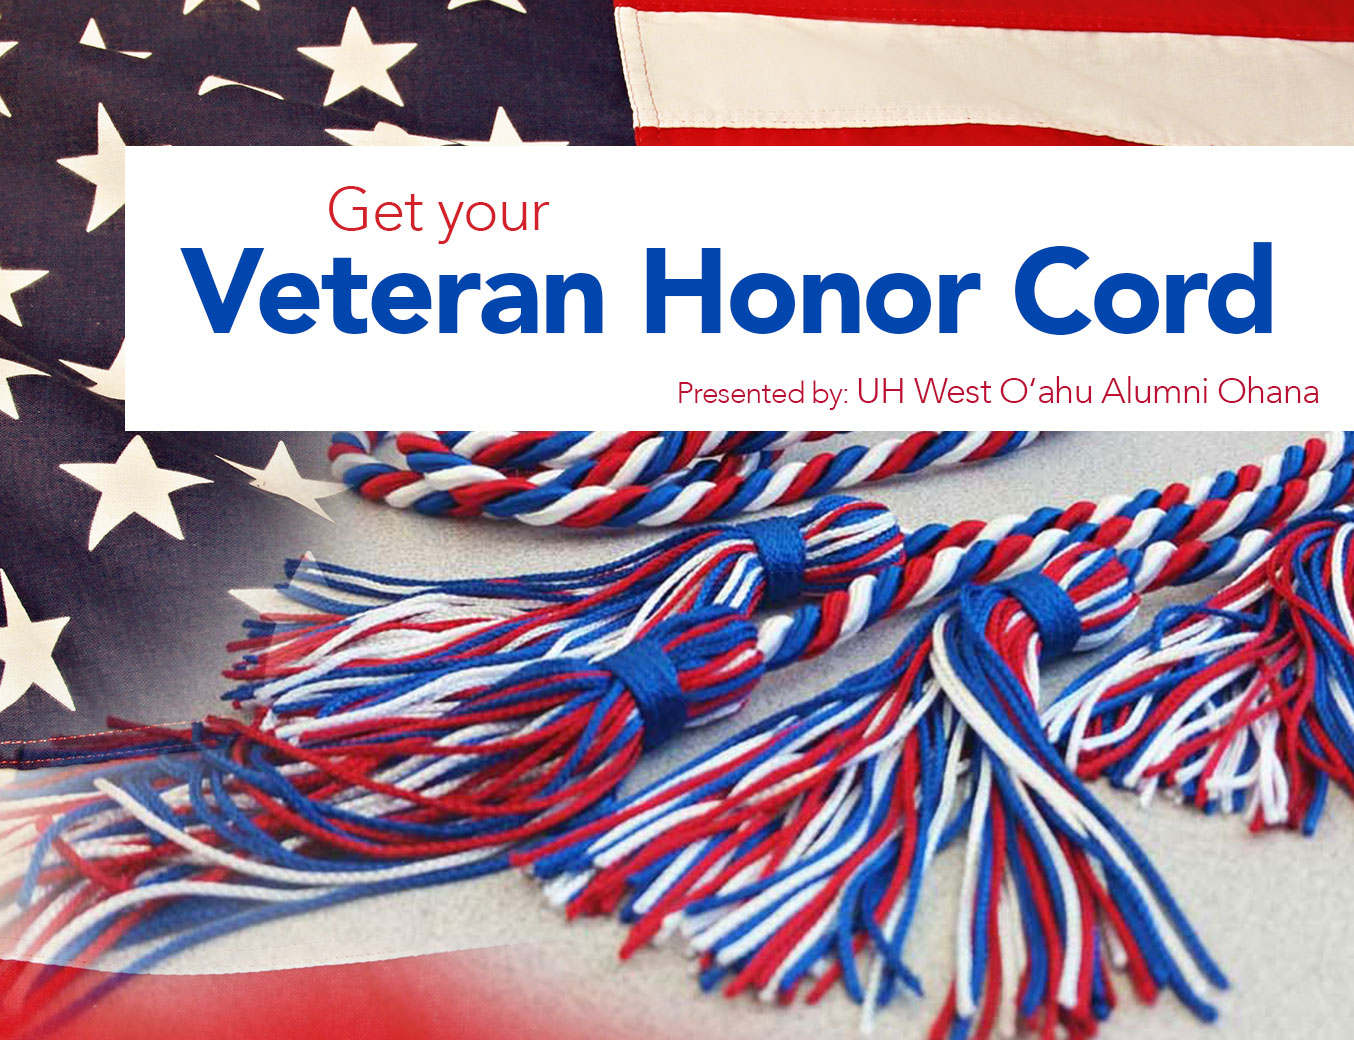 Photo montage in the background of U.S. flag and the Veteran Honor Cord, which is a red, white and blue cord with tassles. Includes words Get your Veteran Honor Cord and presented by UH West Oahu Alumni Ohana